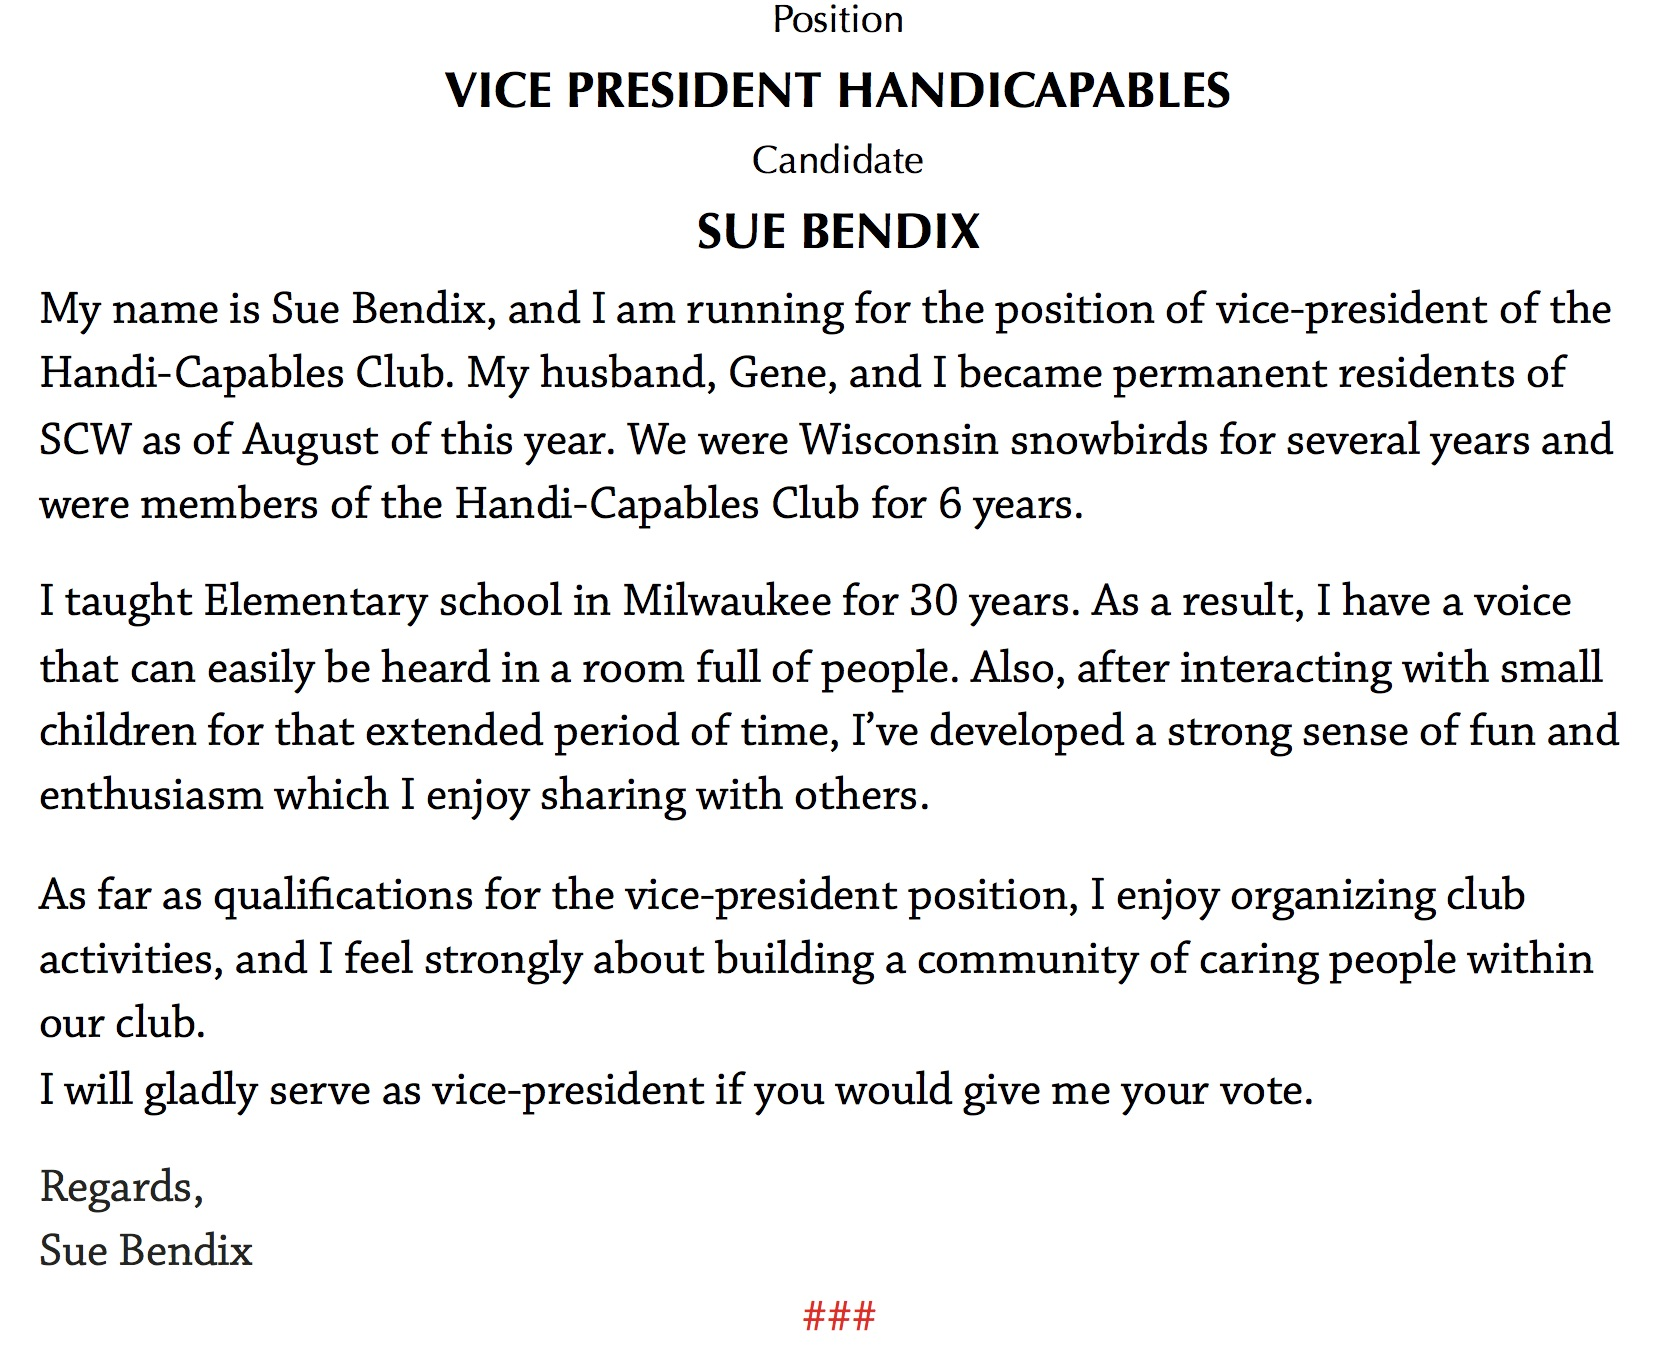 sue-bendix-resume-vicepresident-4-pages